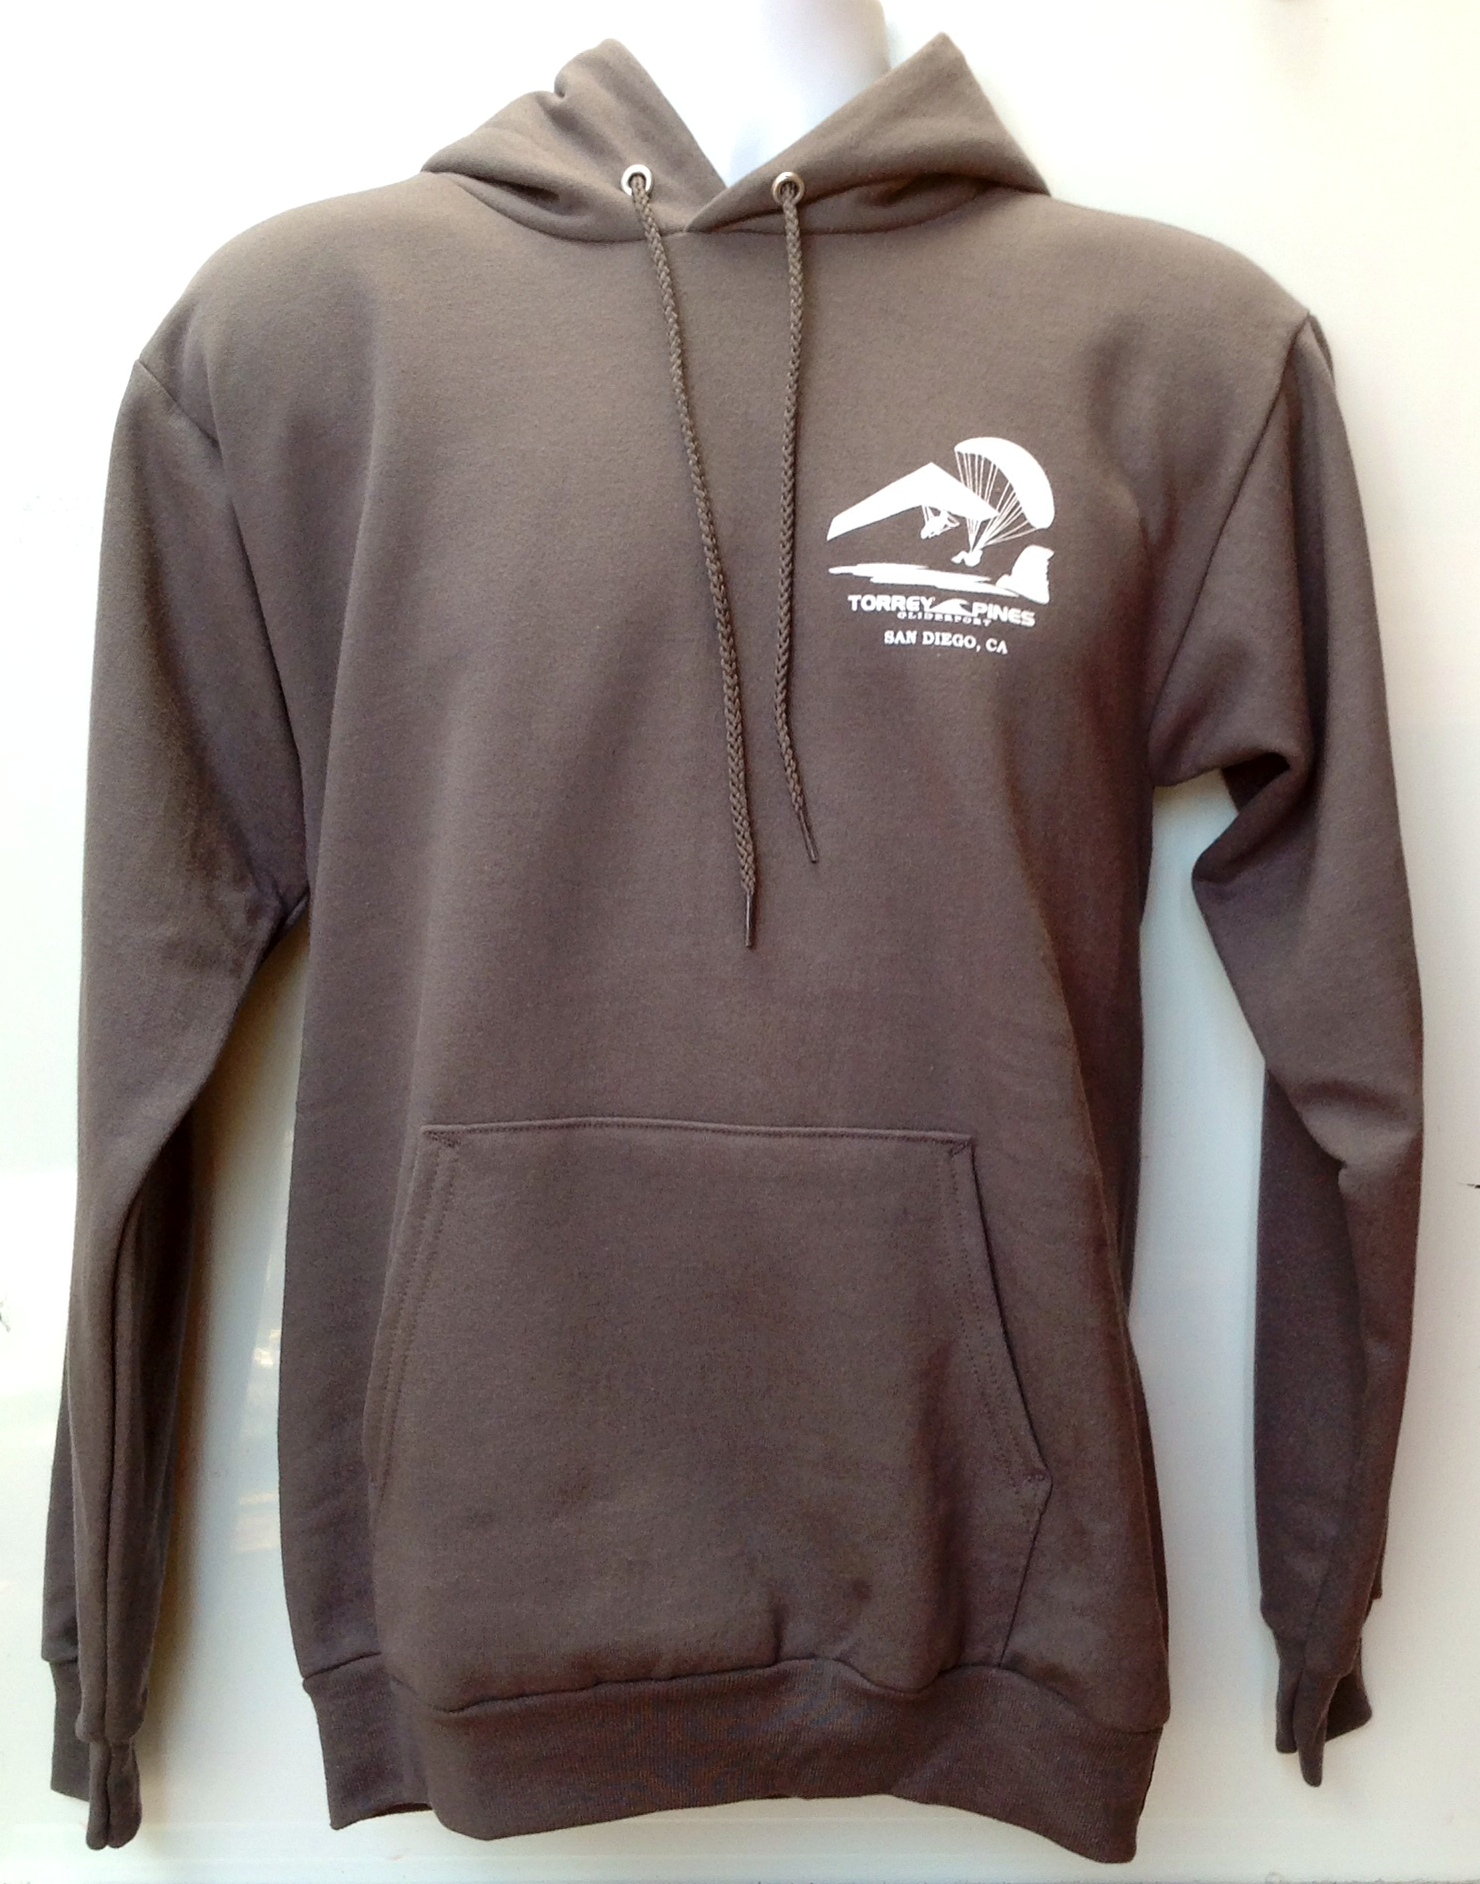 d0a88cb3a04 Torrey Pines Gliderport Hoodie